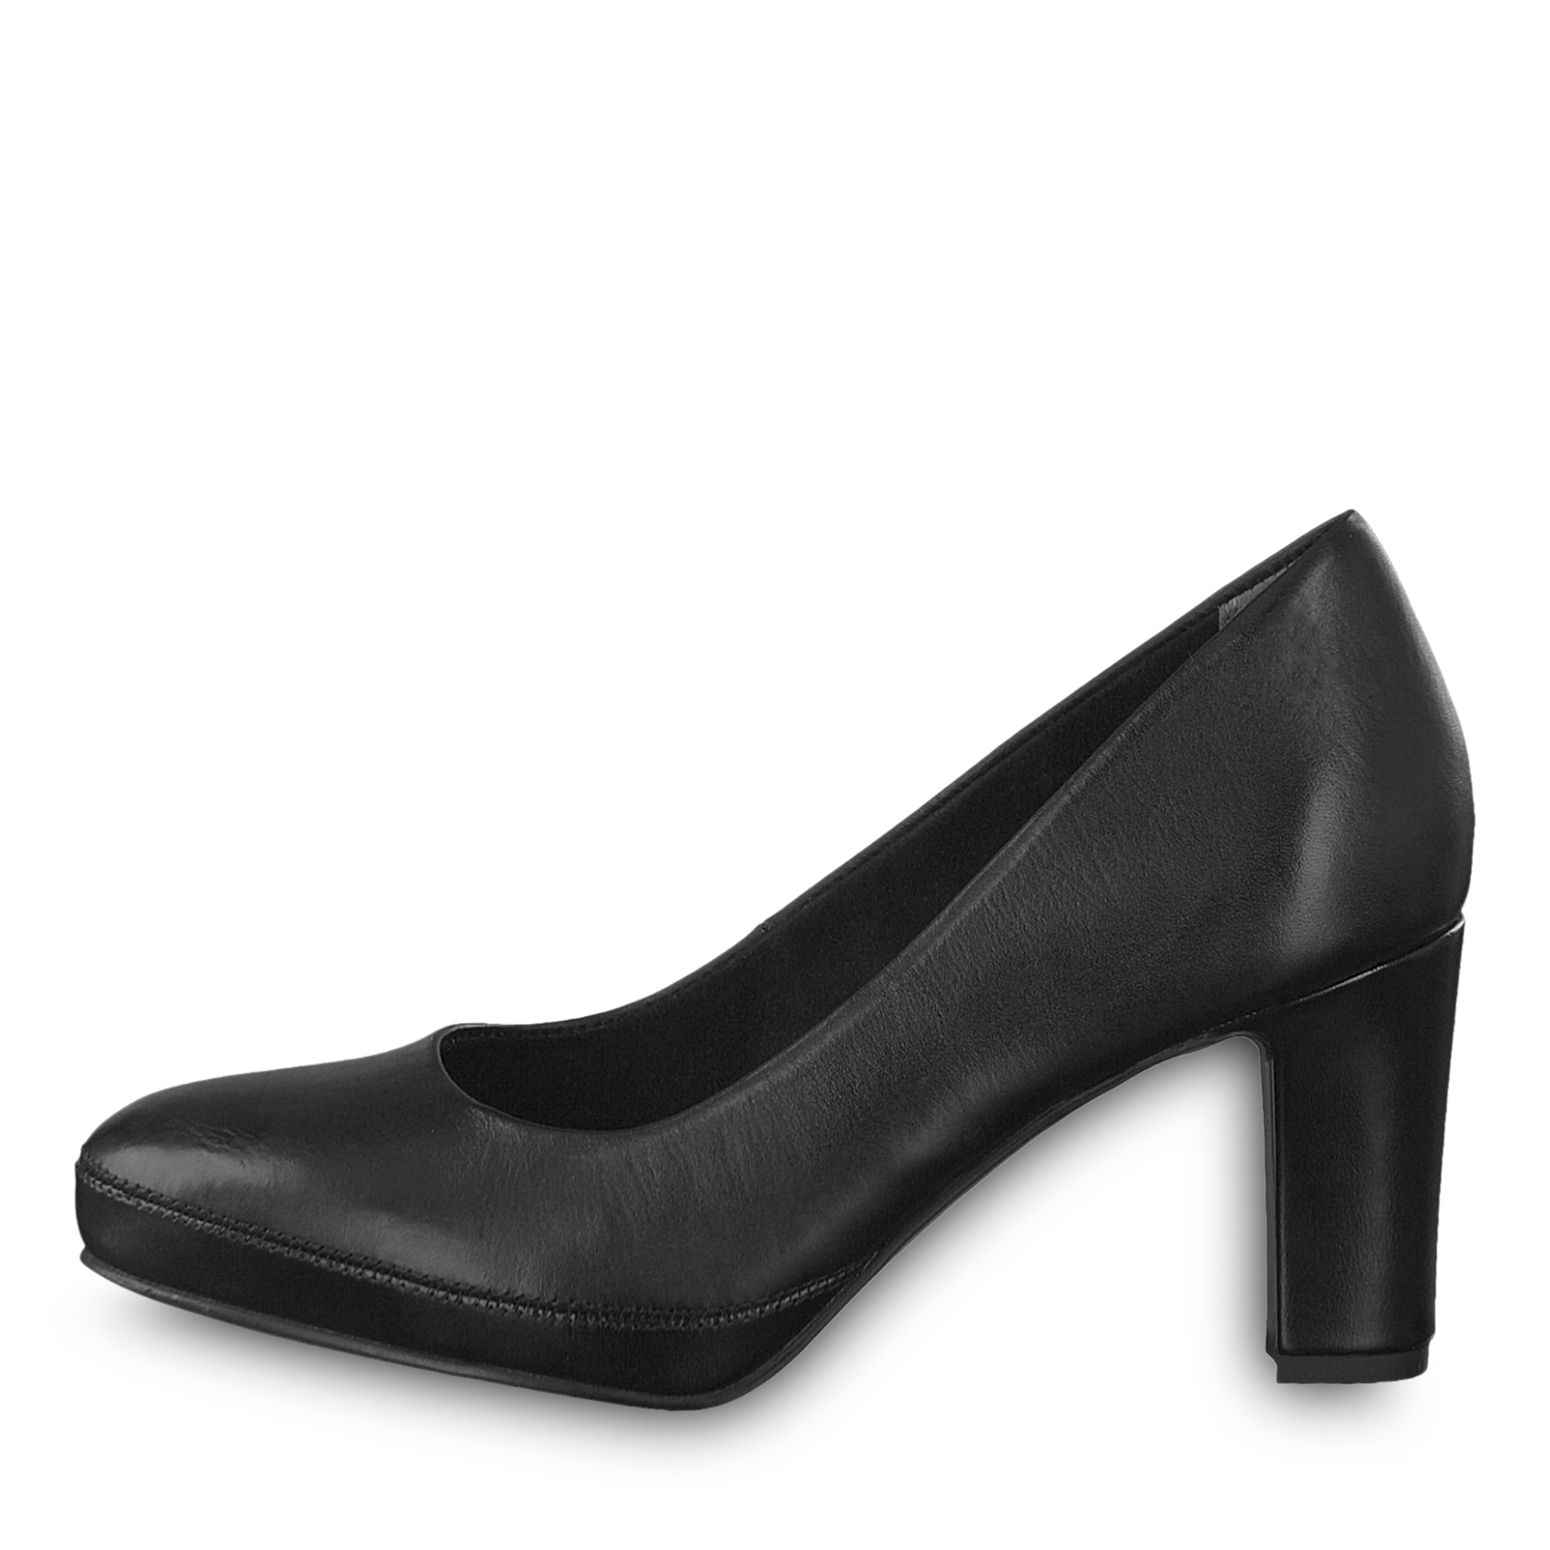 Tamaris pumps maura, black, hi-res OTURGQV